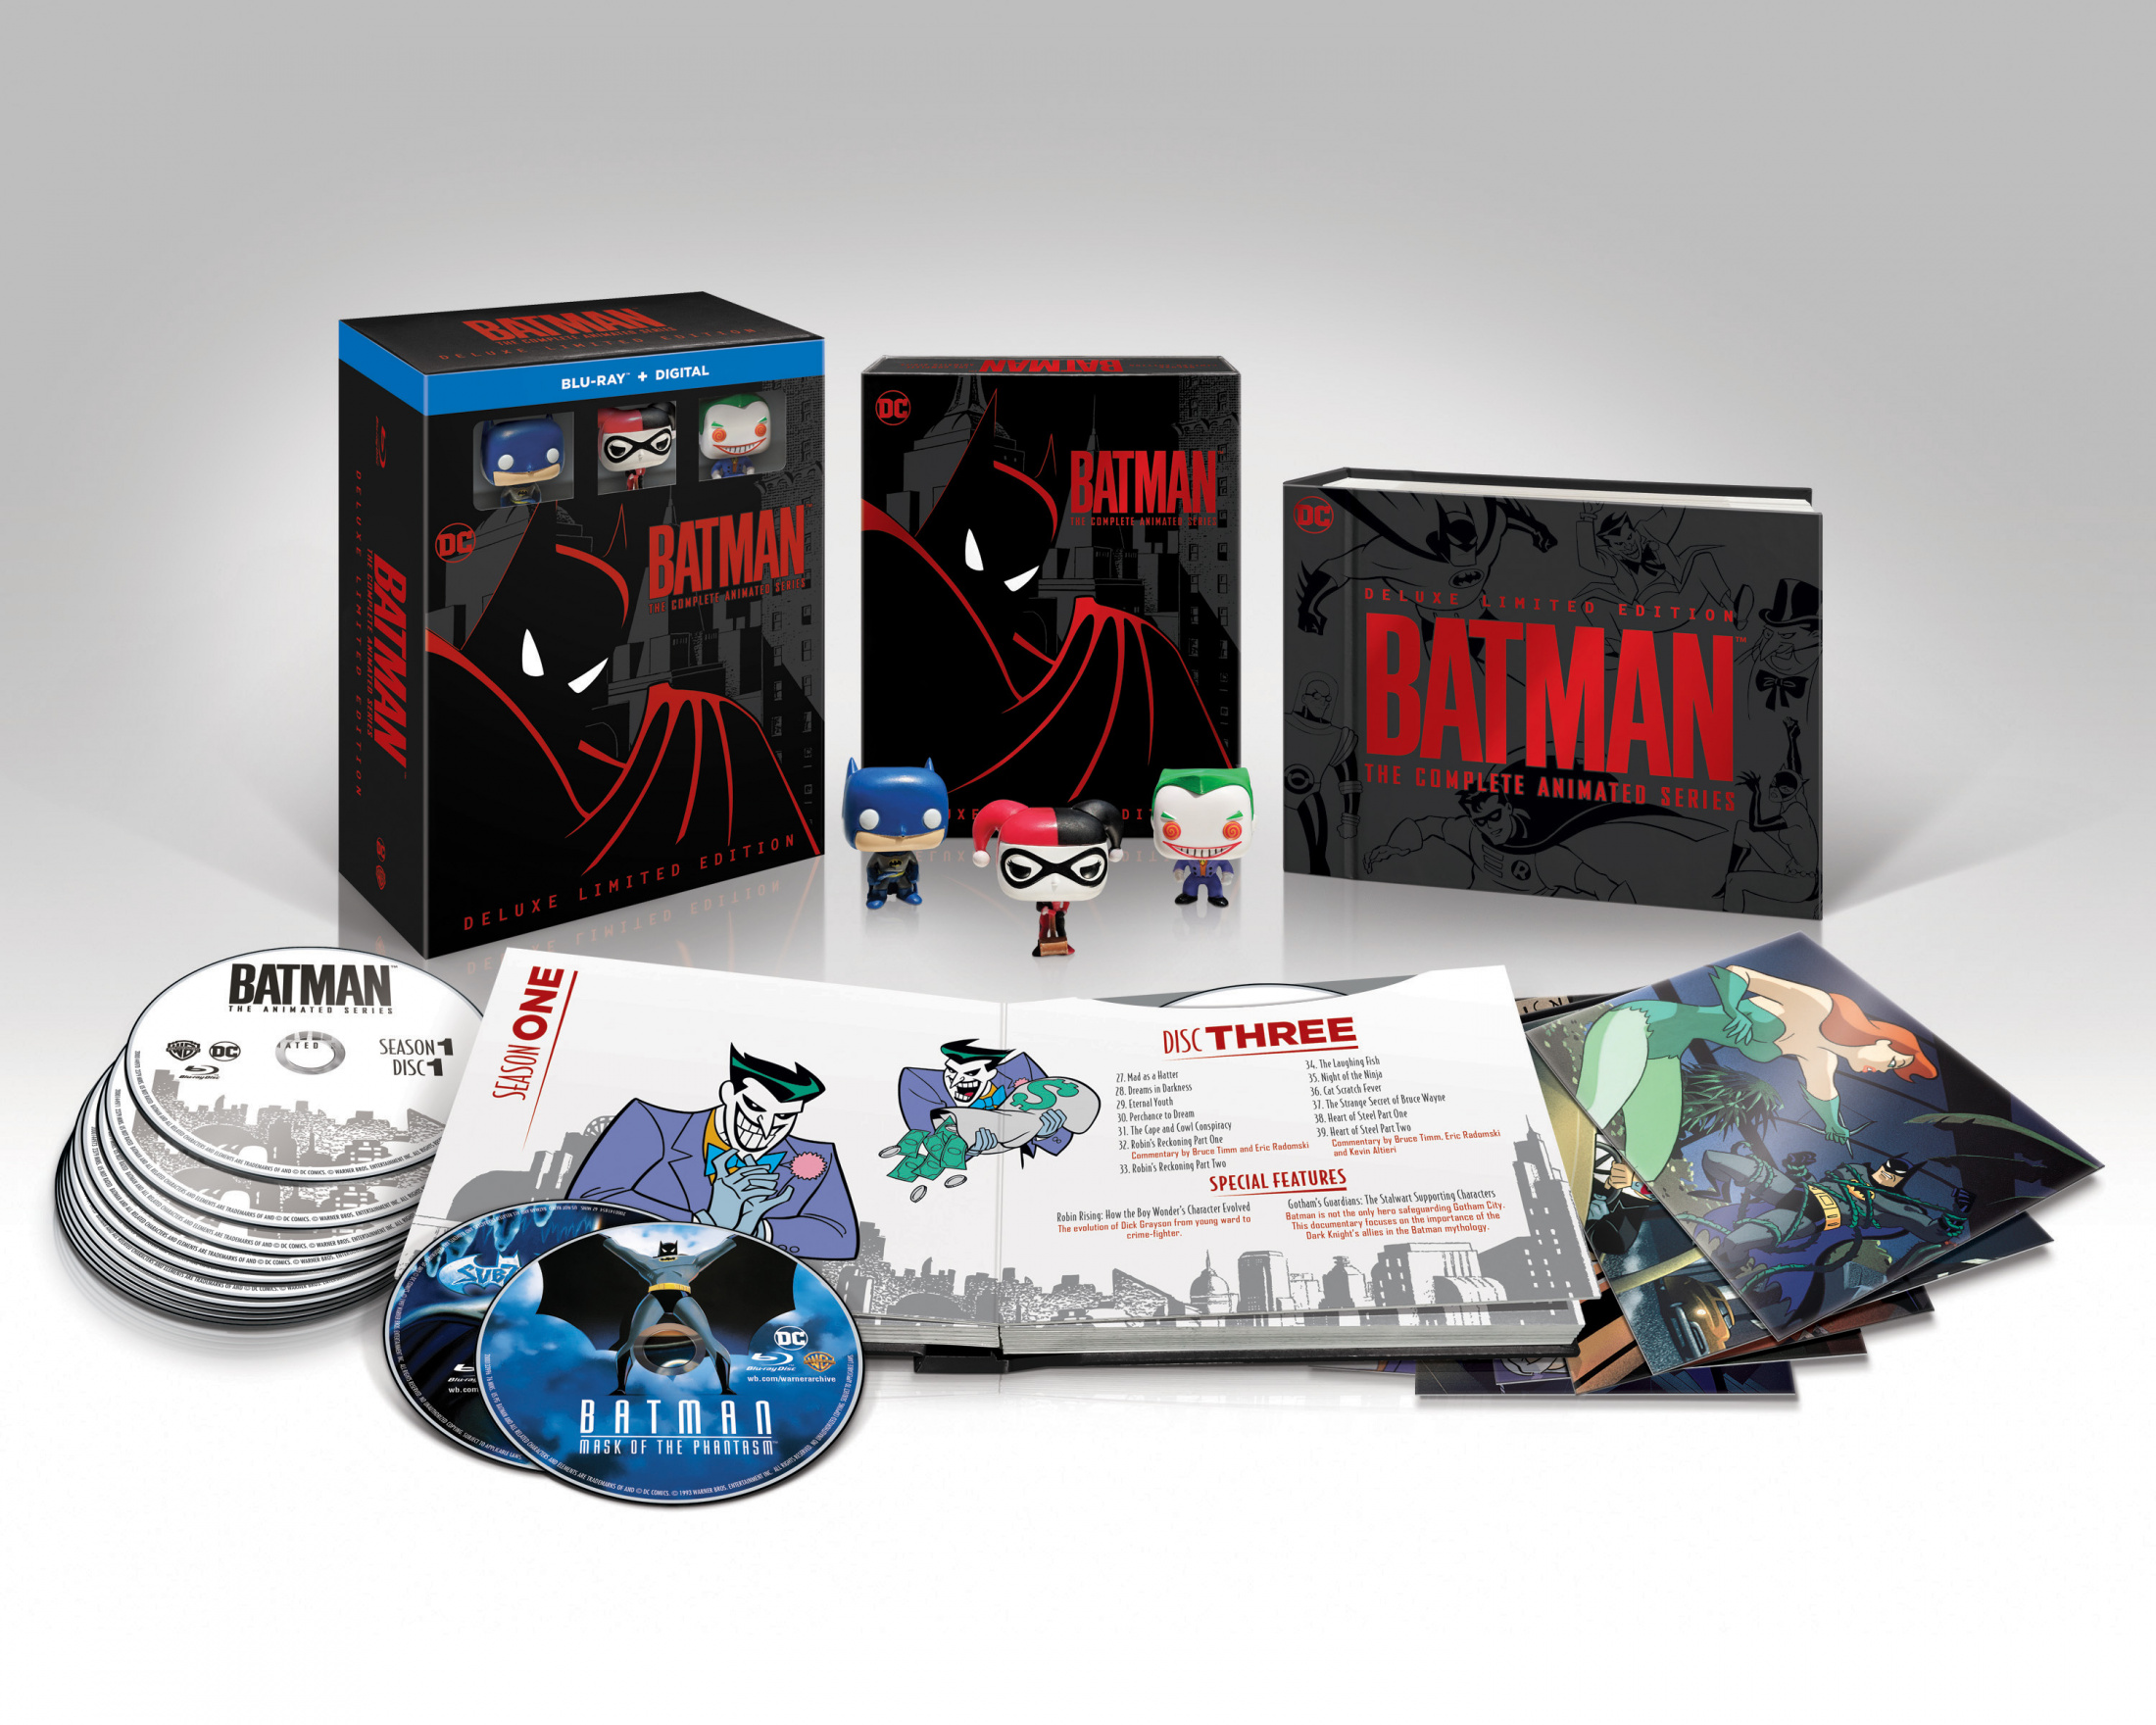 Thumbnail for Batman: The Complete Animated Series Deluxe Edition